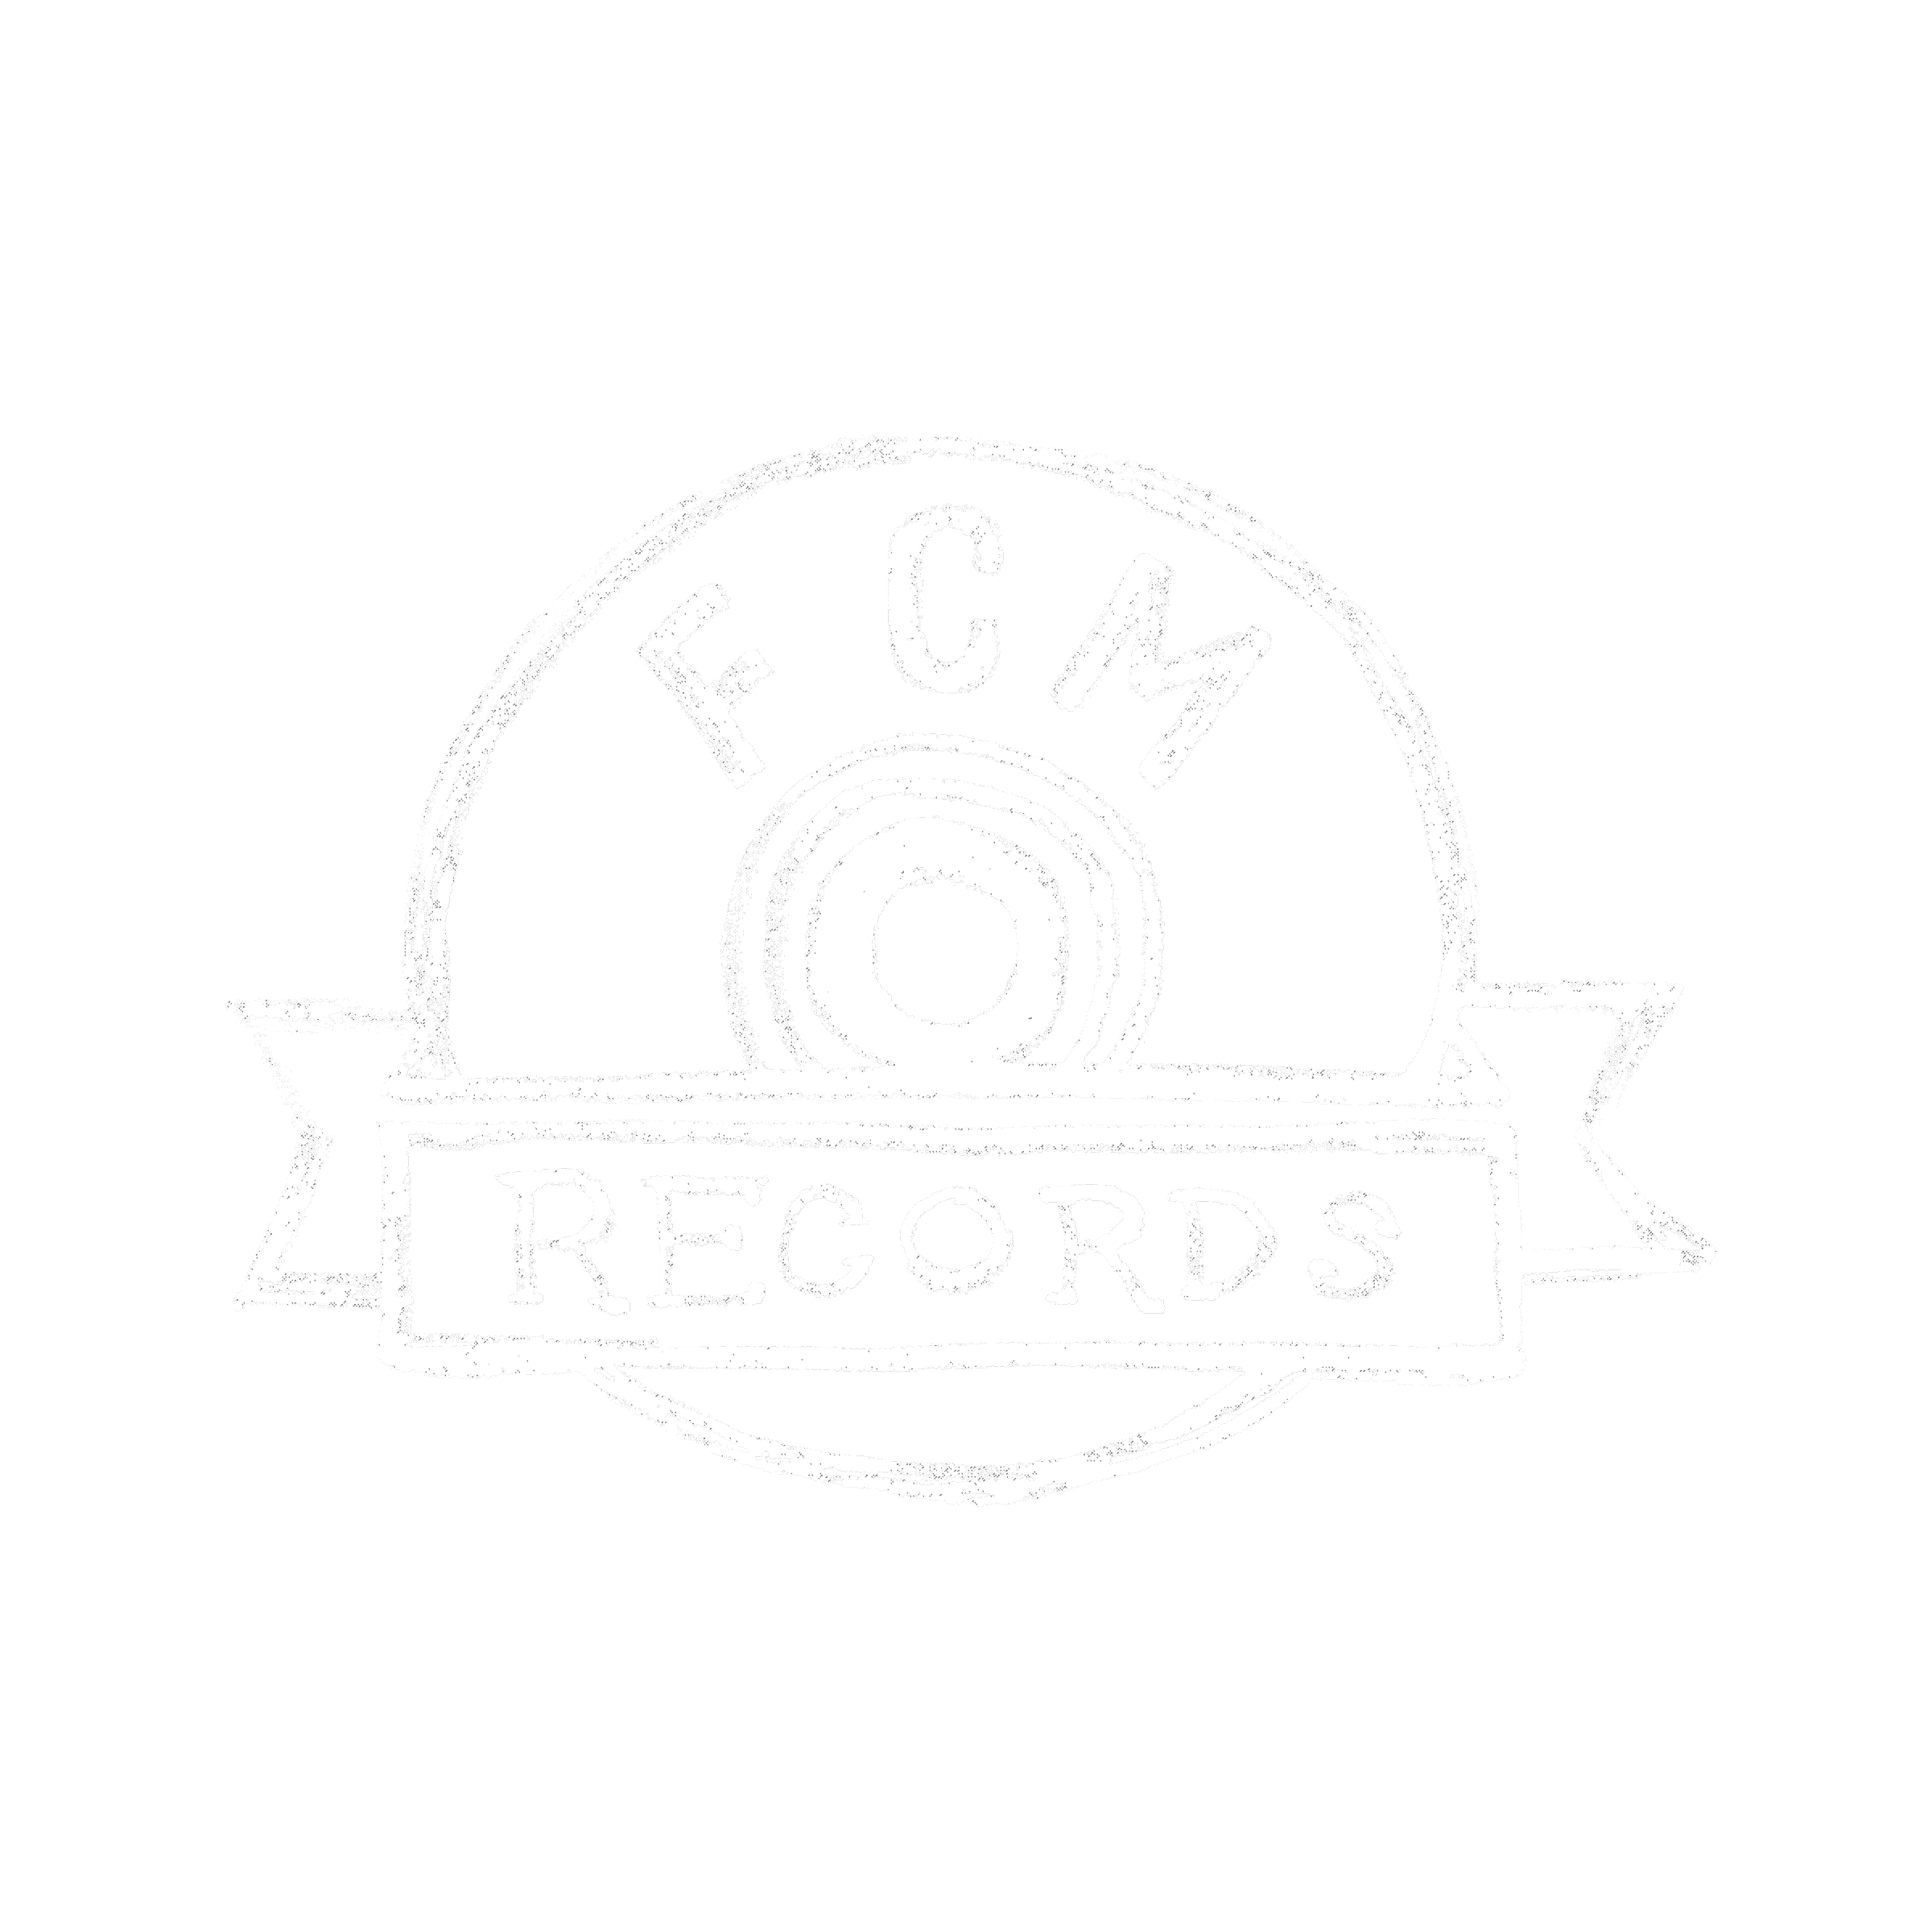 FCM Records